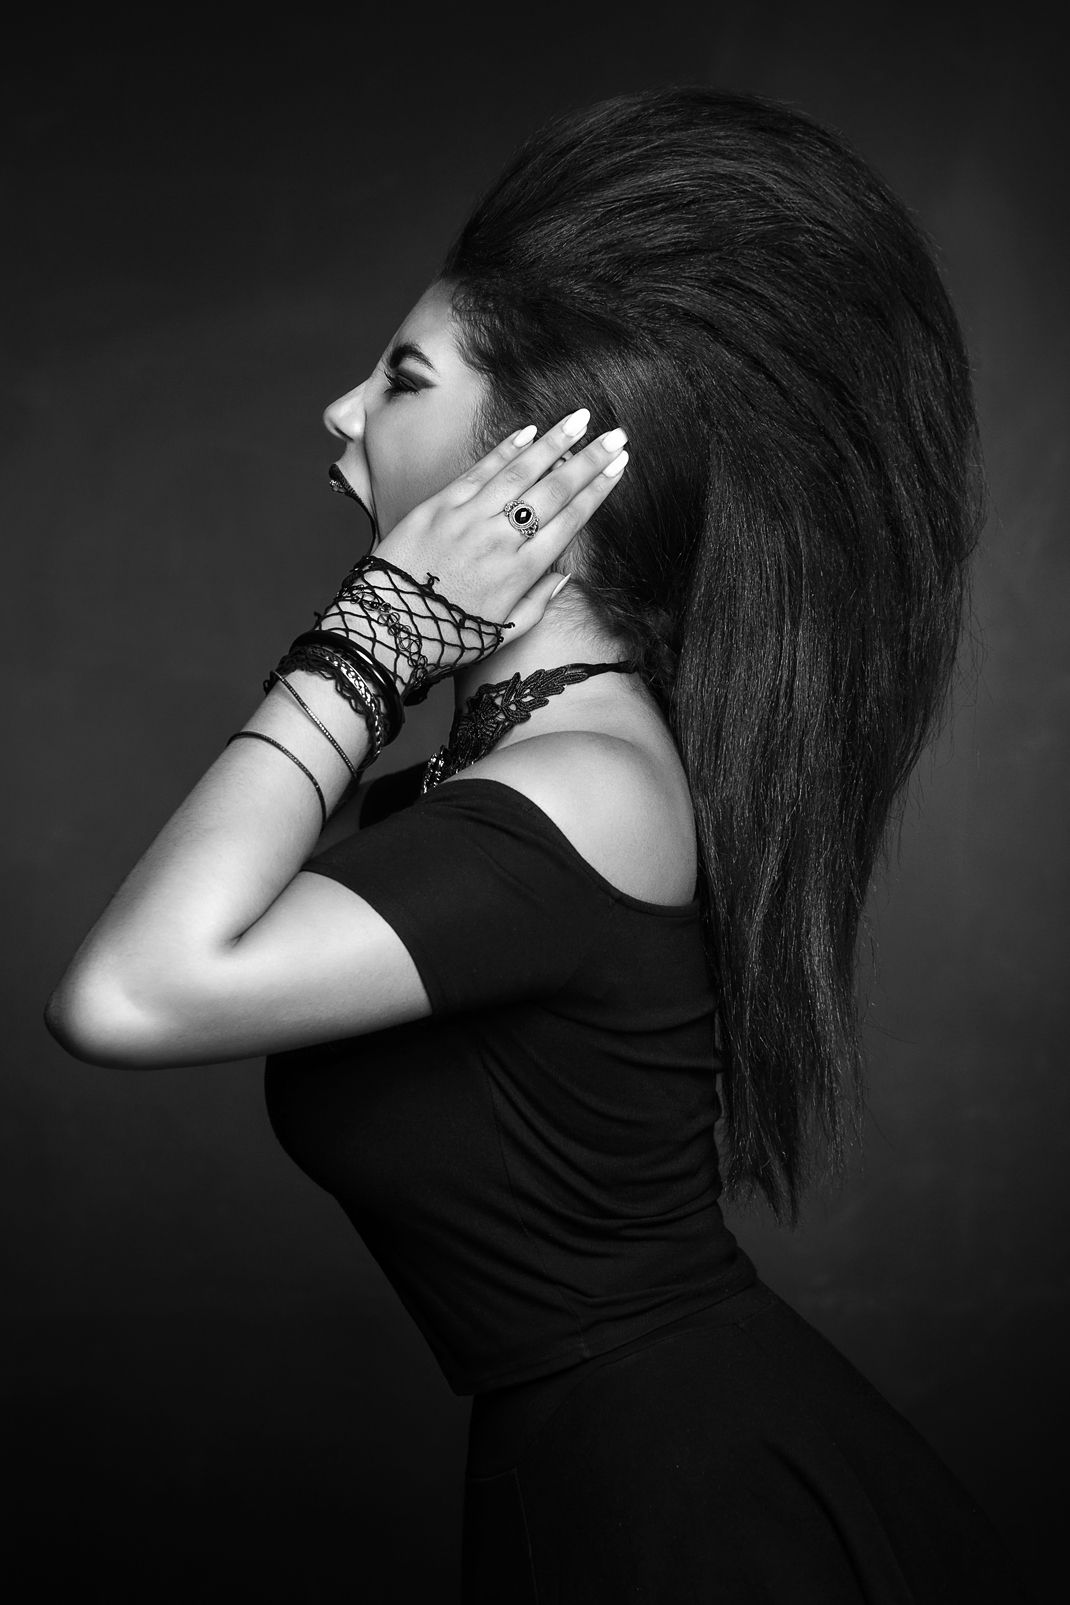 Portrait - Markus Hertzsch - B&W - Girl - Model - Bildlook - Face - Pose - Art - Hair - Eyes - Scream - Loud - Power - Noise - Fashion - Miriam